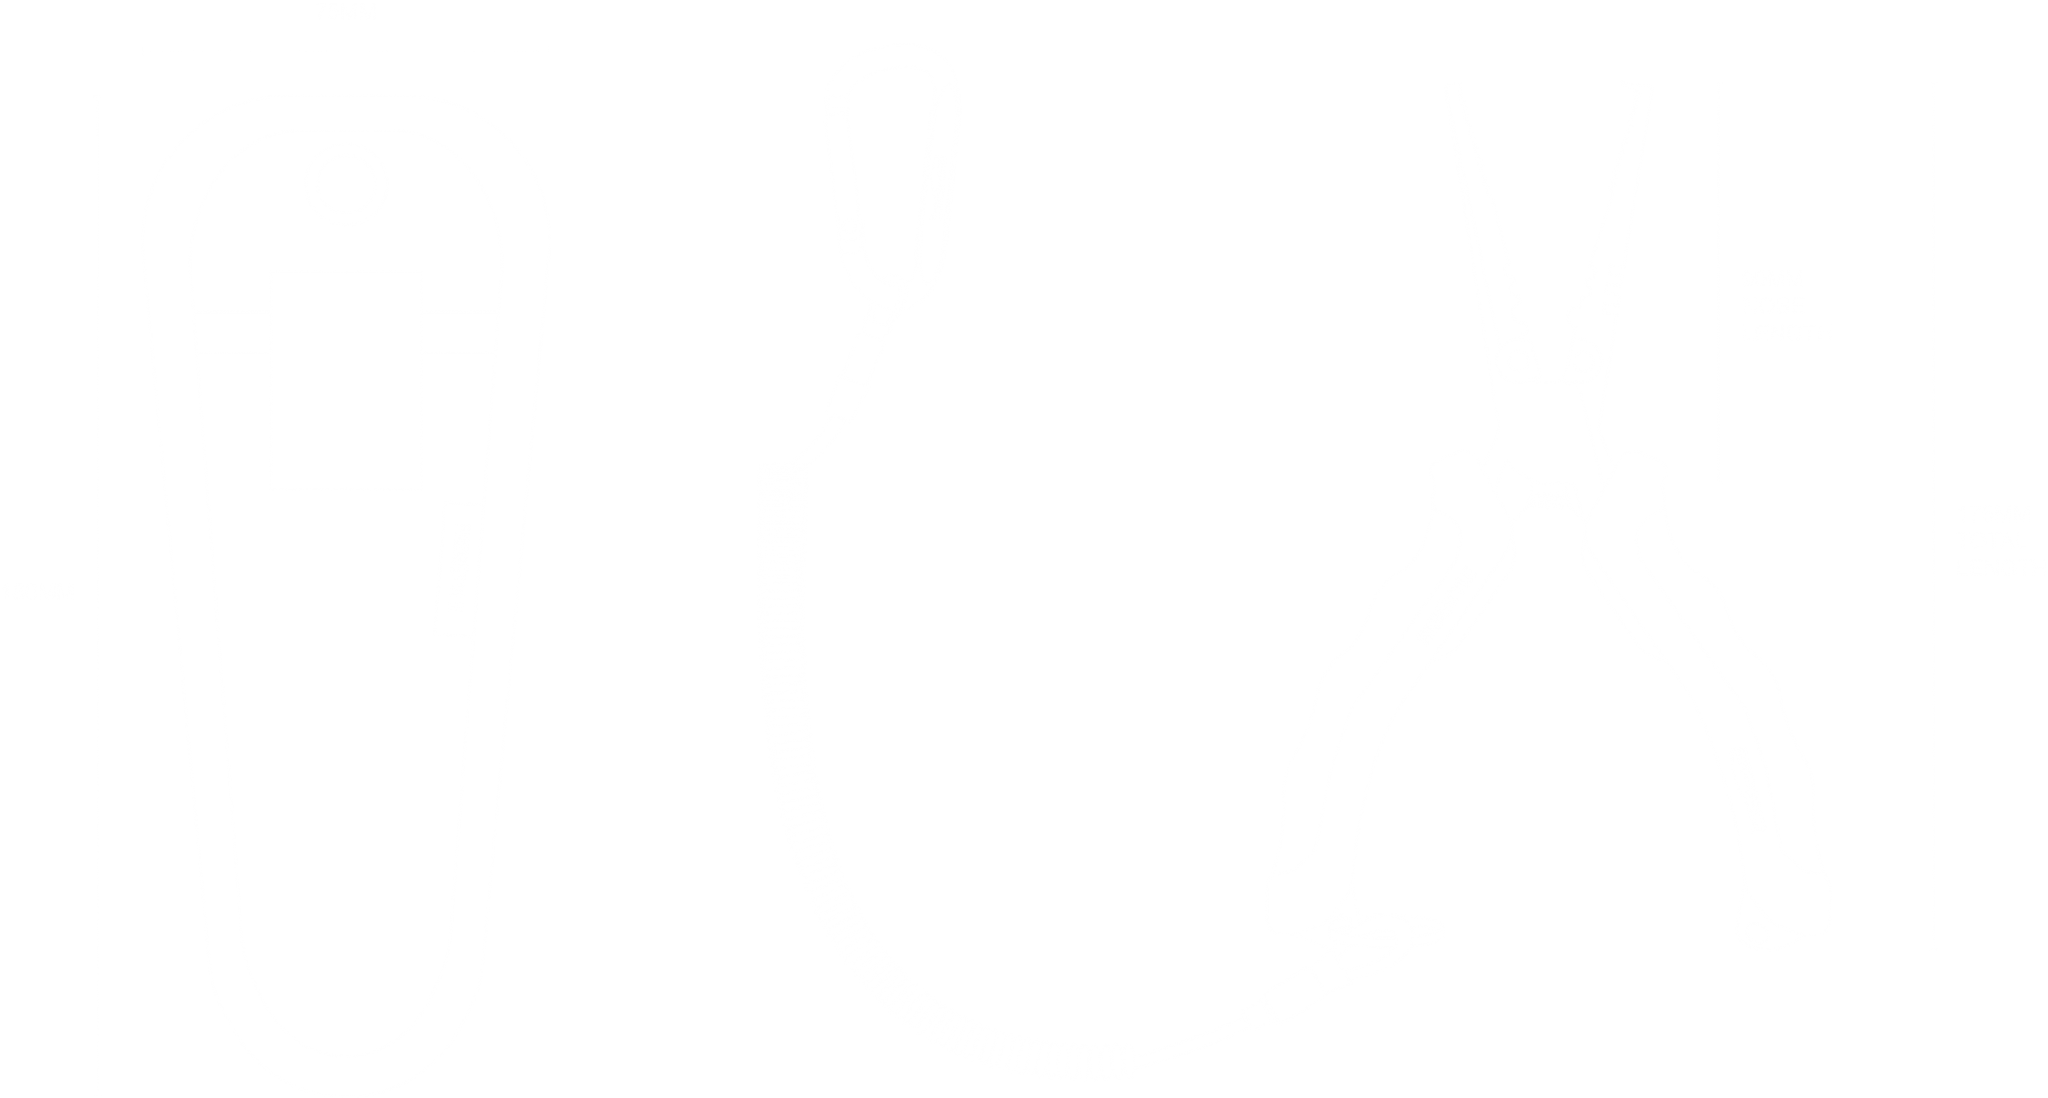 Technical Drawing - Recon Pliers